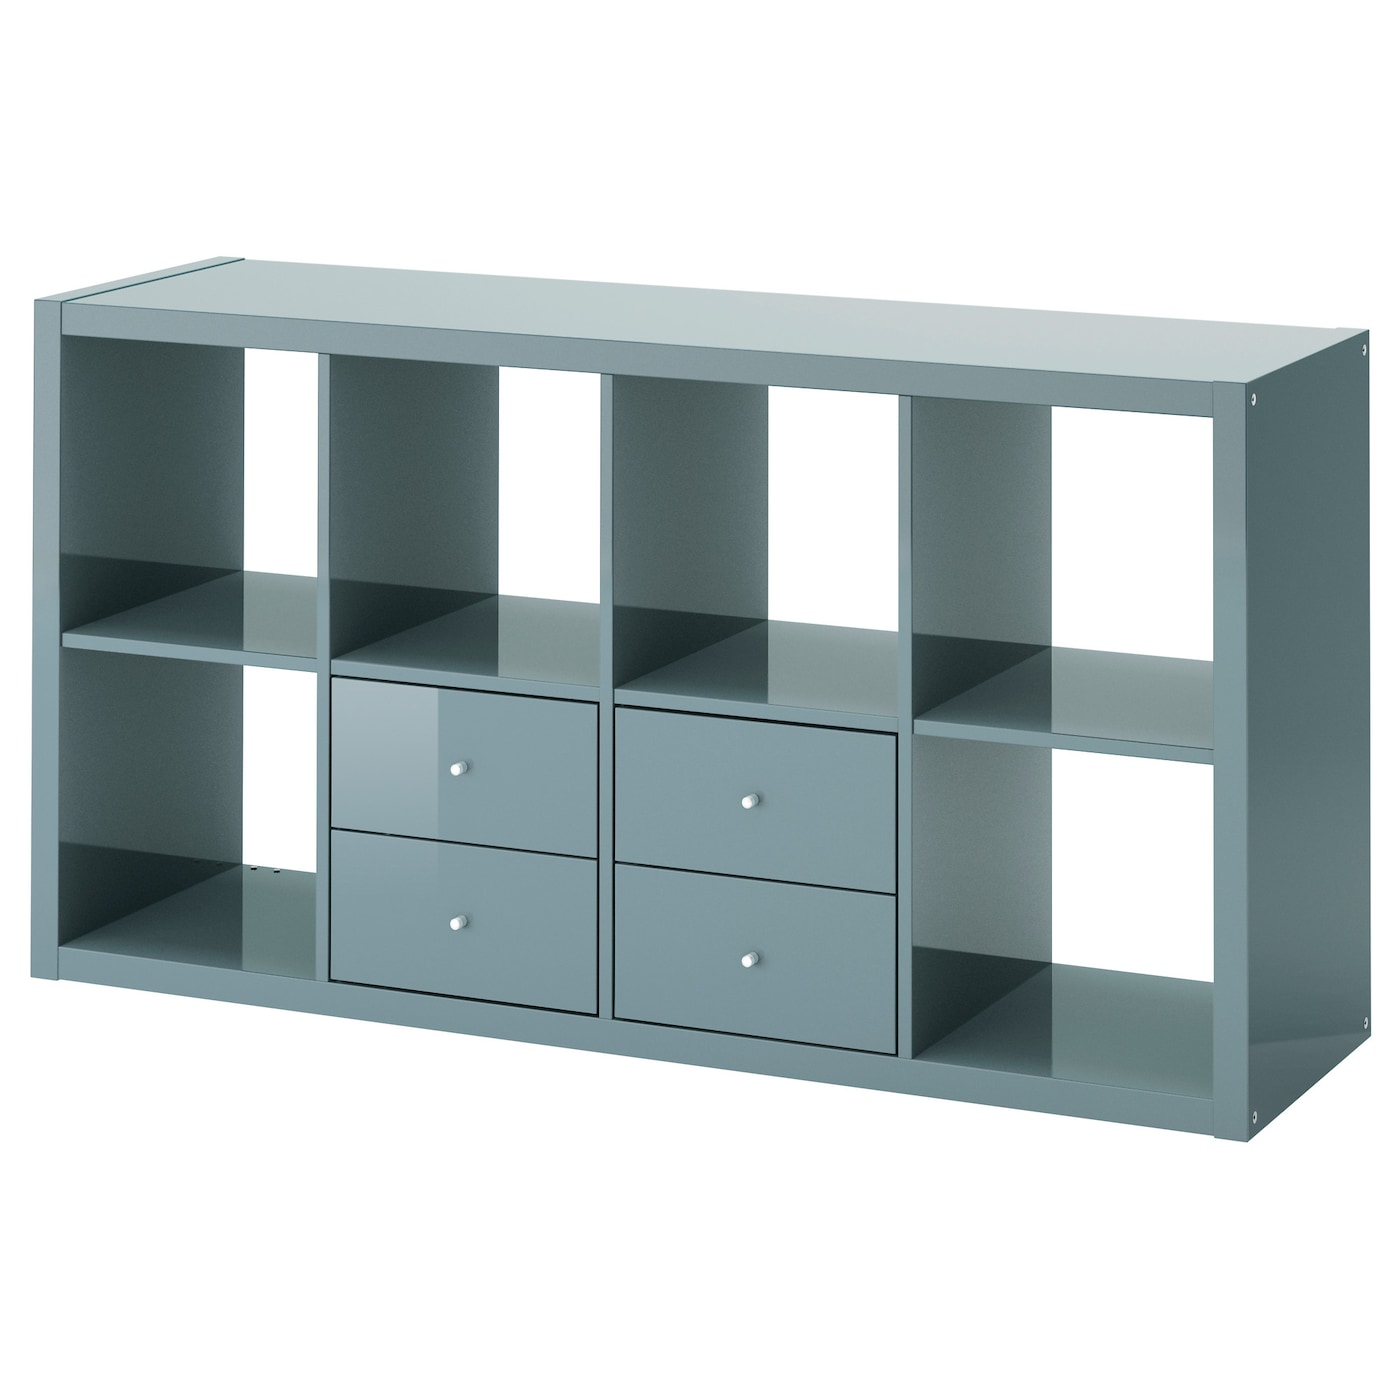 kallax shelving unit with 2 inserts high gloss grey. Black Bedroom Furniture Sets. Home Design Ideas